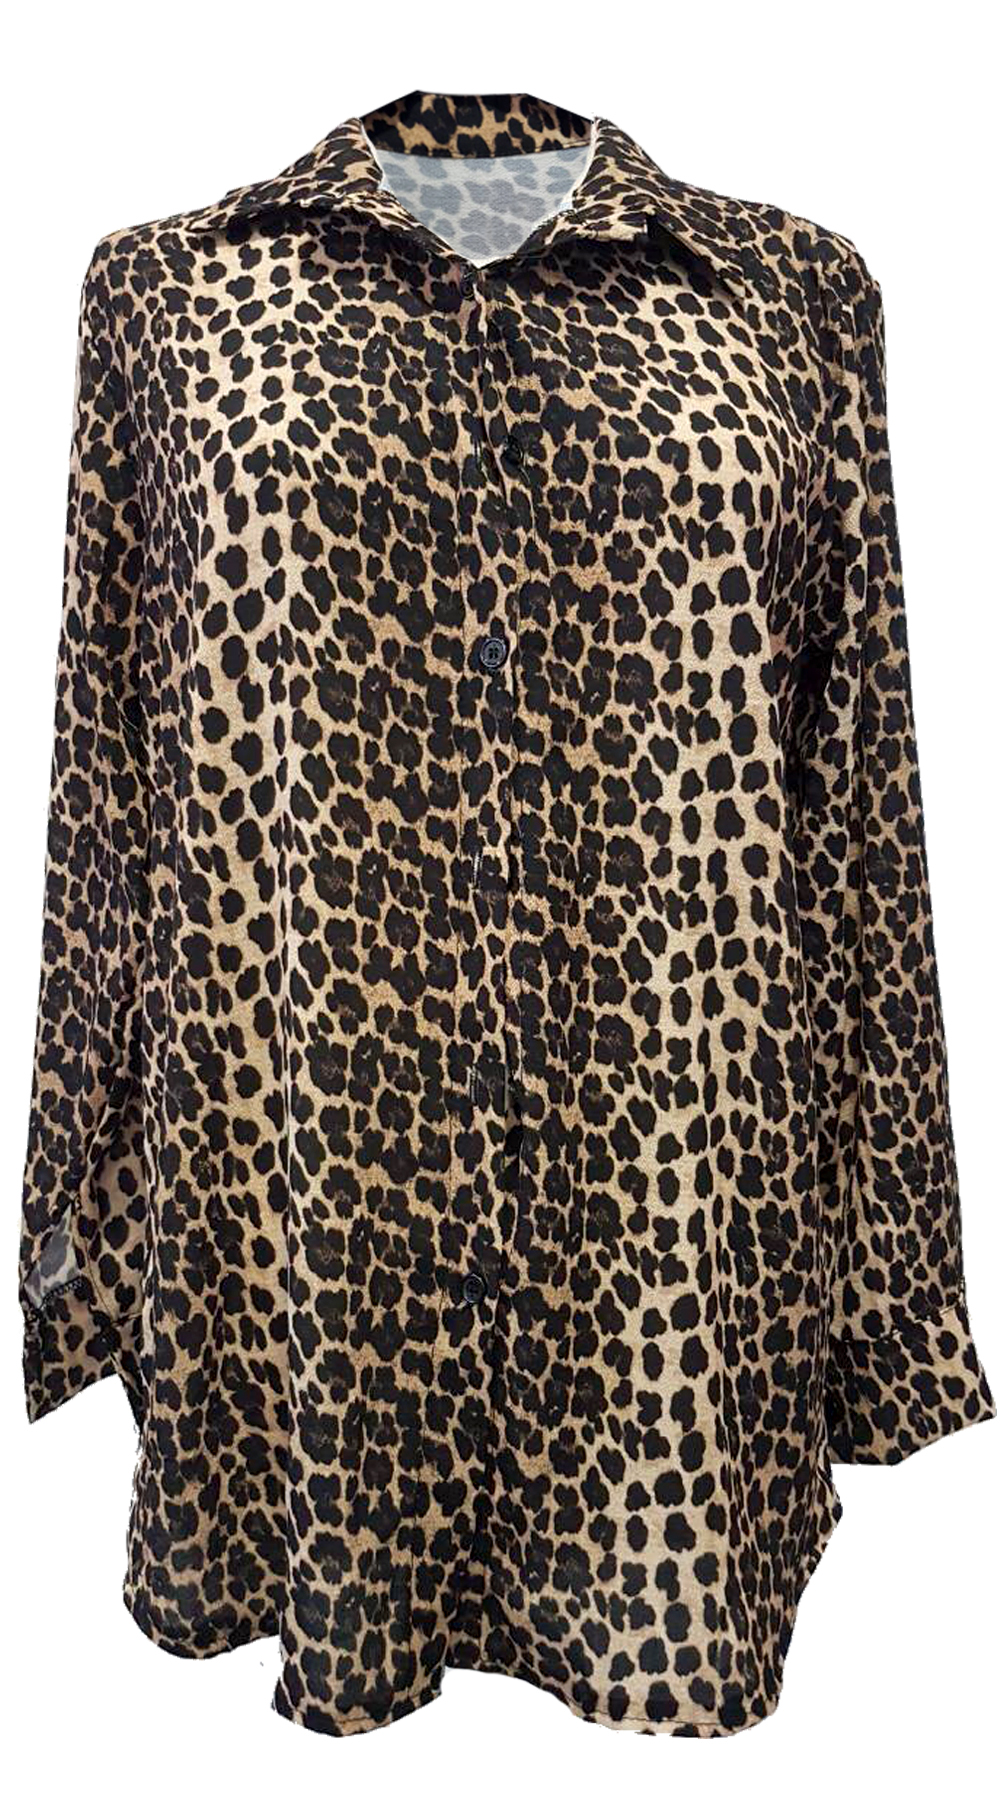 Λεοπάρ Πουκάμισο - MissReina - FW18SOF-18880 top trends animal prints